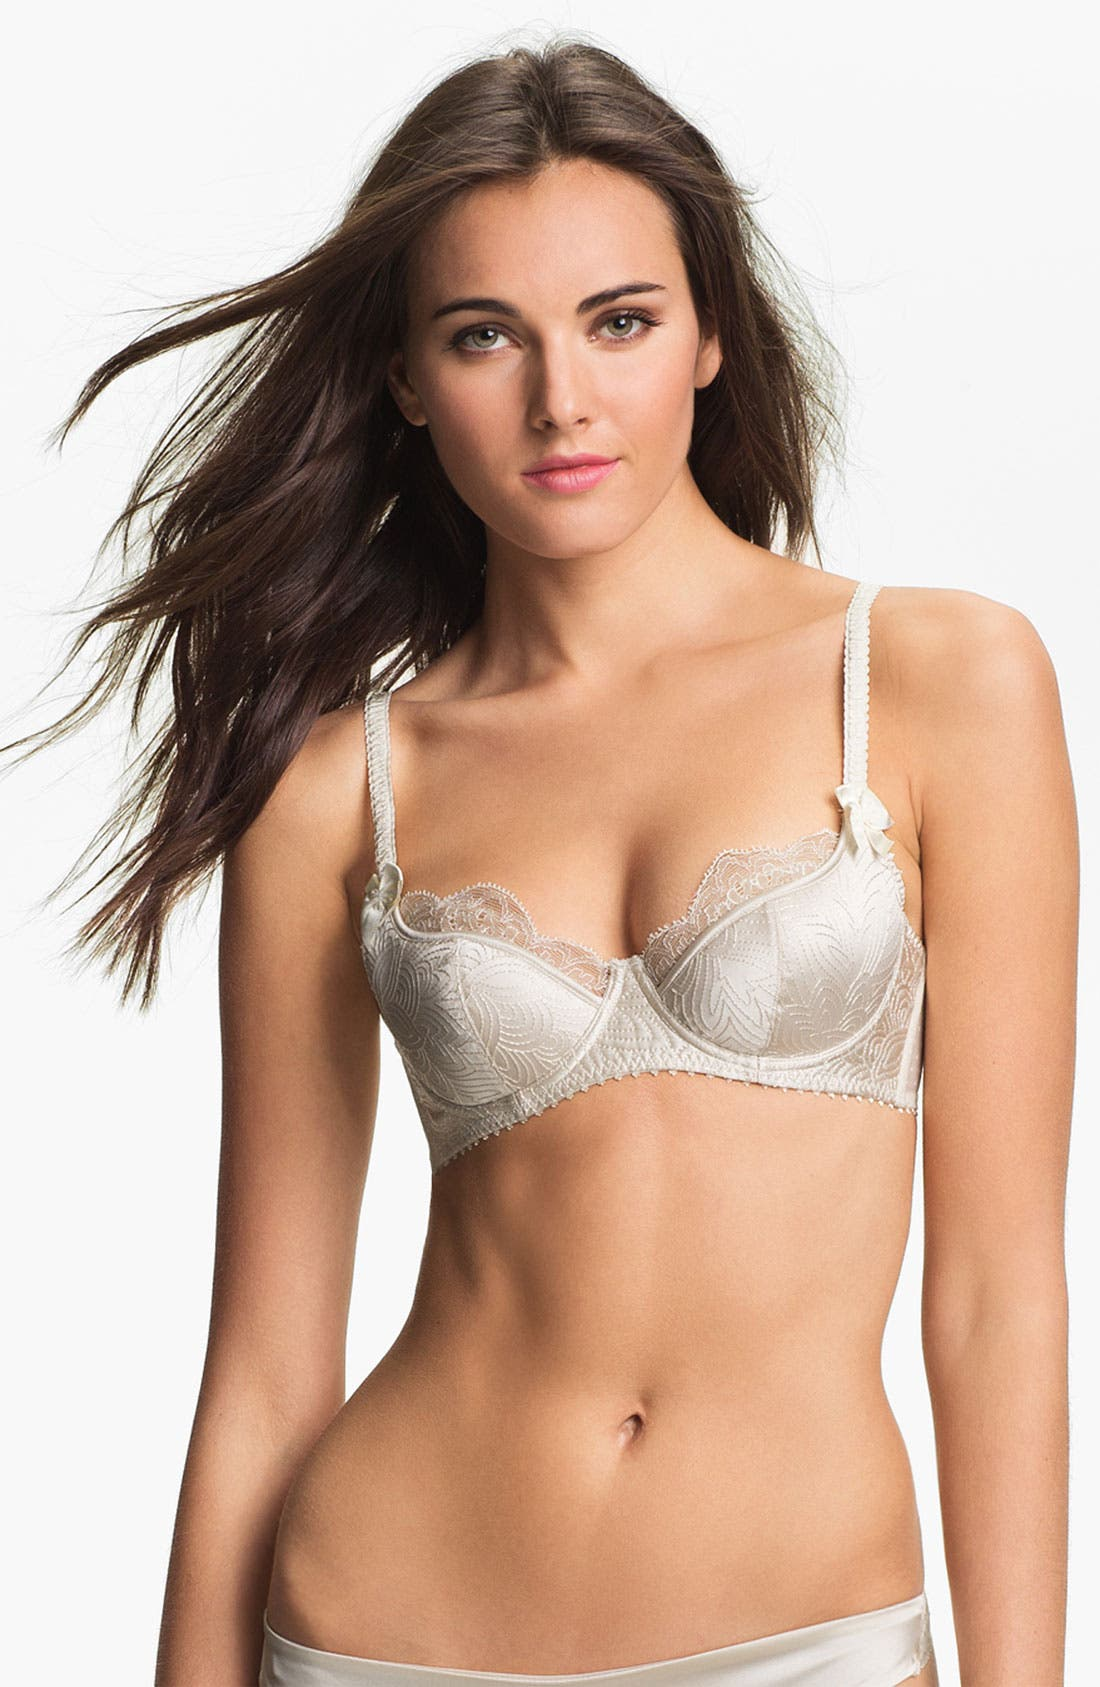 Main Image - Stella McCartney 'Erin Wishing' Underwire Balconette Bra